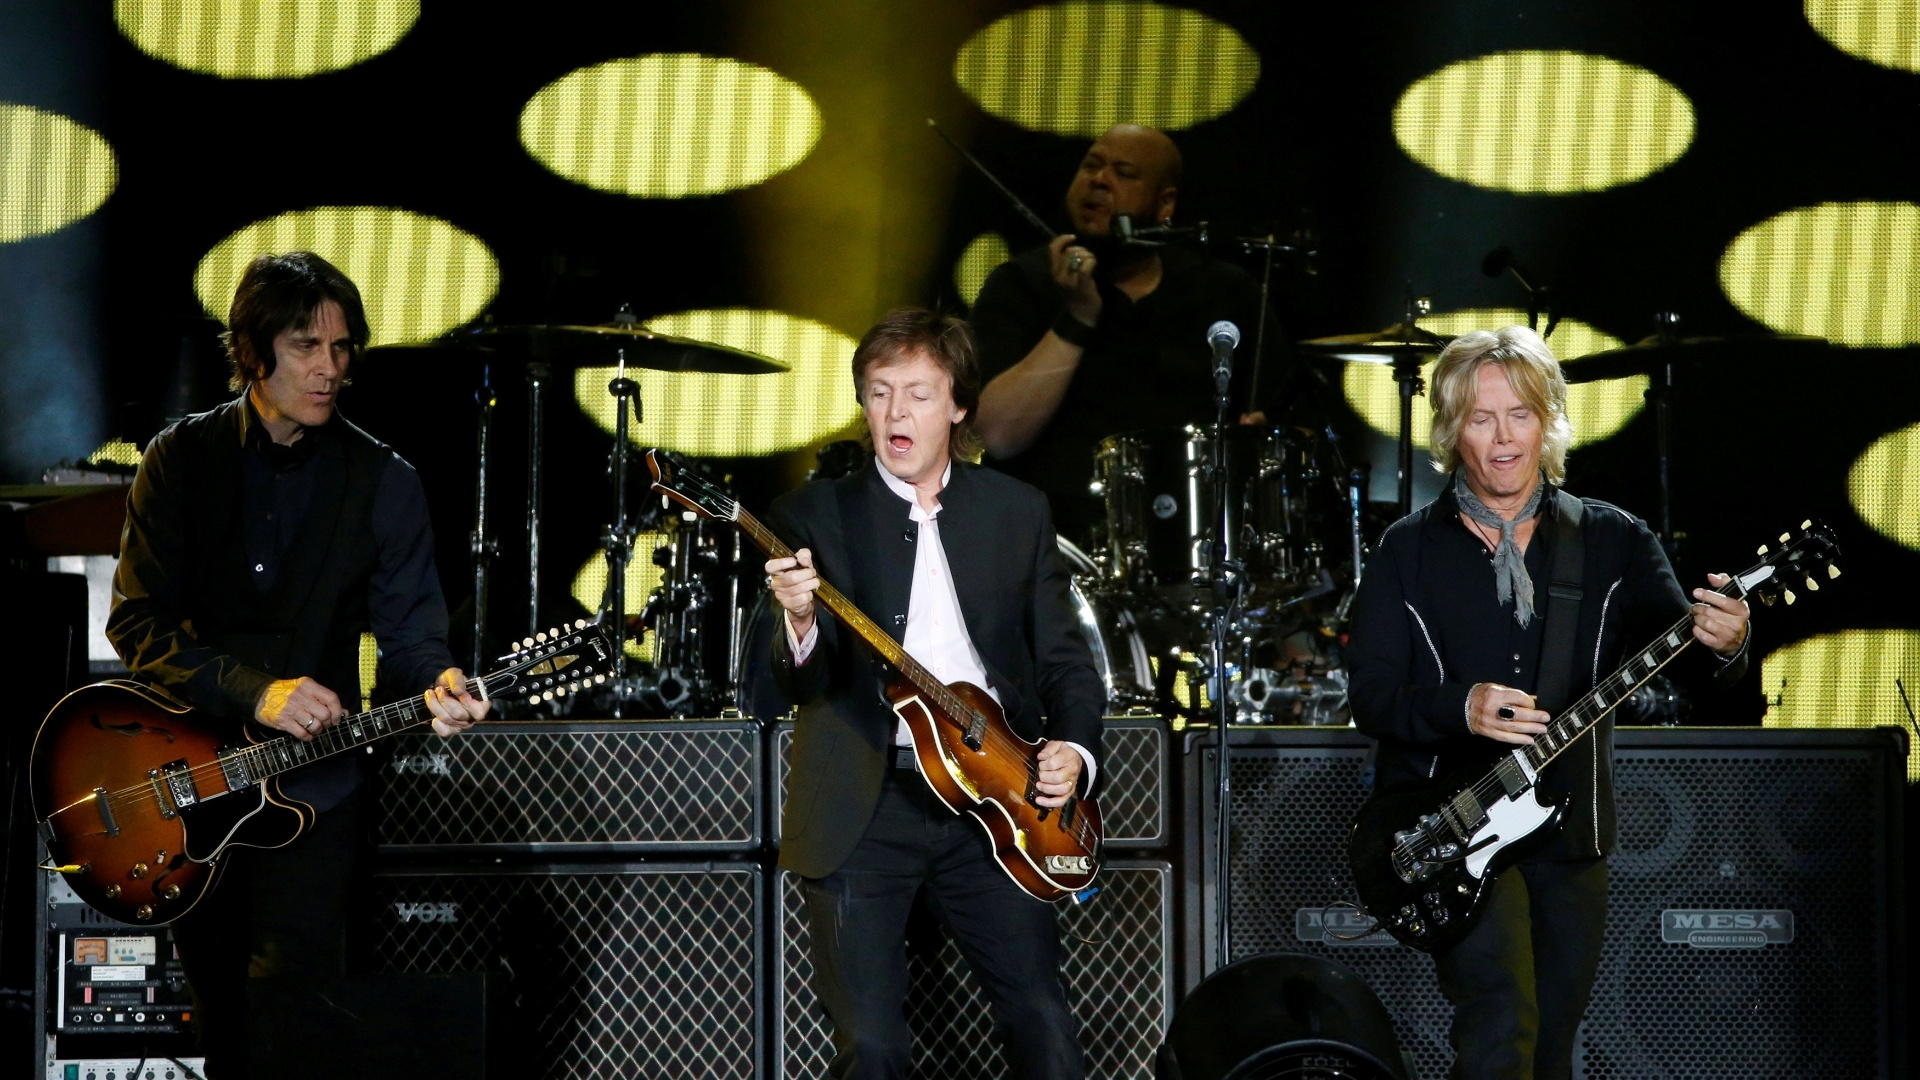 8.out.2016 - Paul McCartney fechou o segundo dia do festival Desert Trip, no Empire Polo Field, em Indio, na Califórnia, com hits dos Beatles e dos Wings